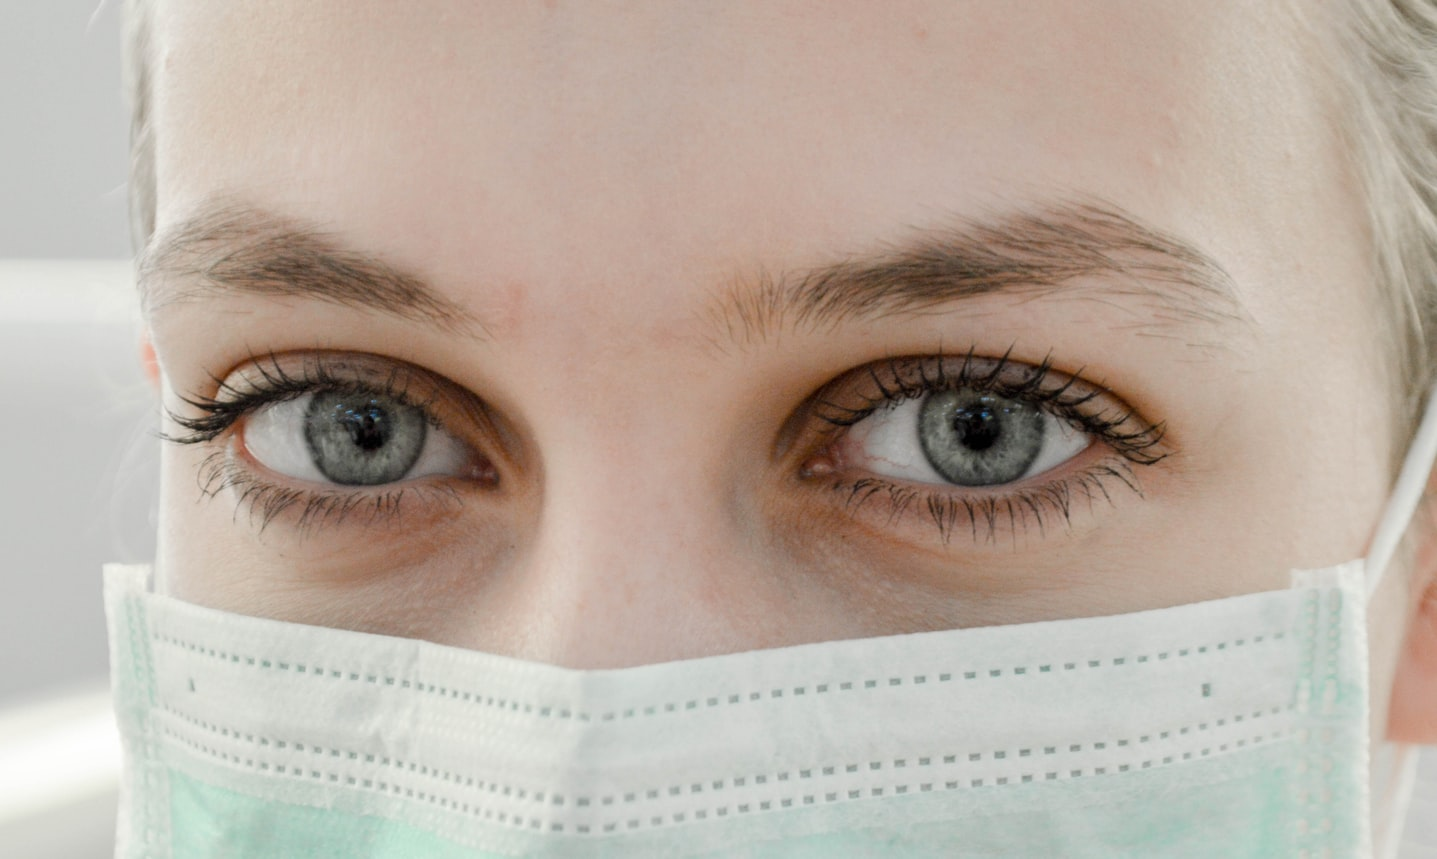 Woman in medical mask.